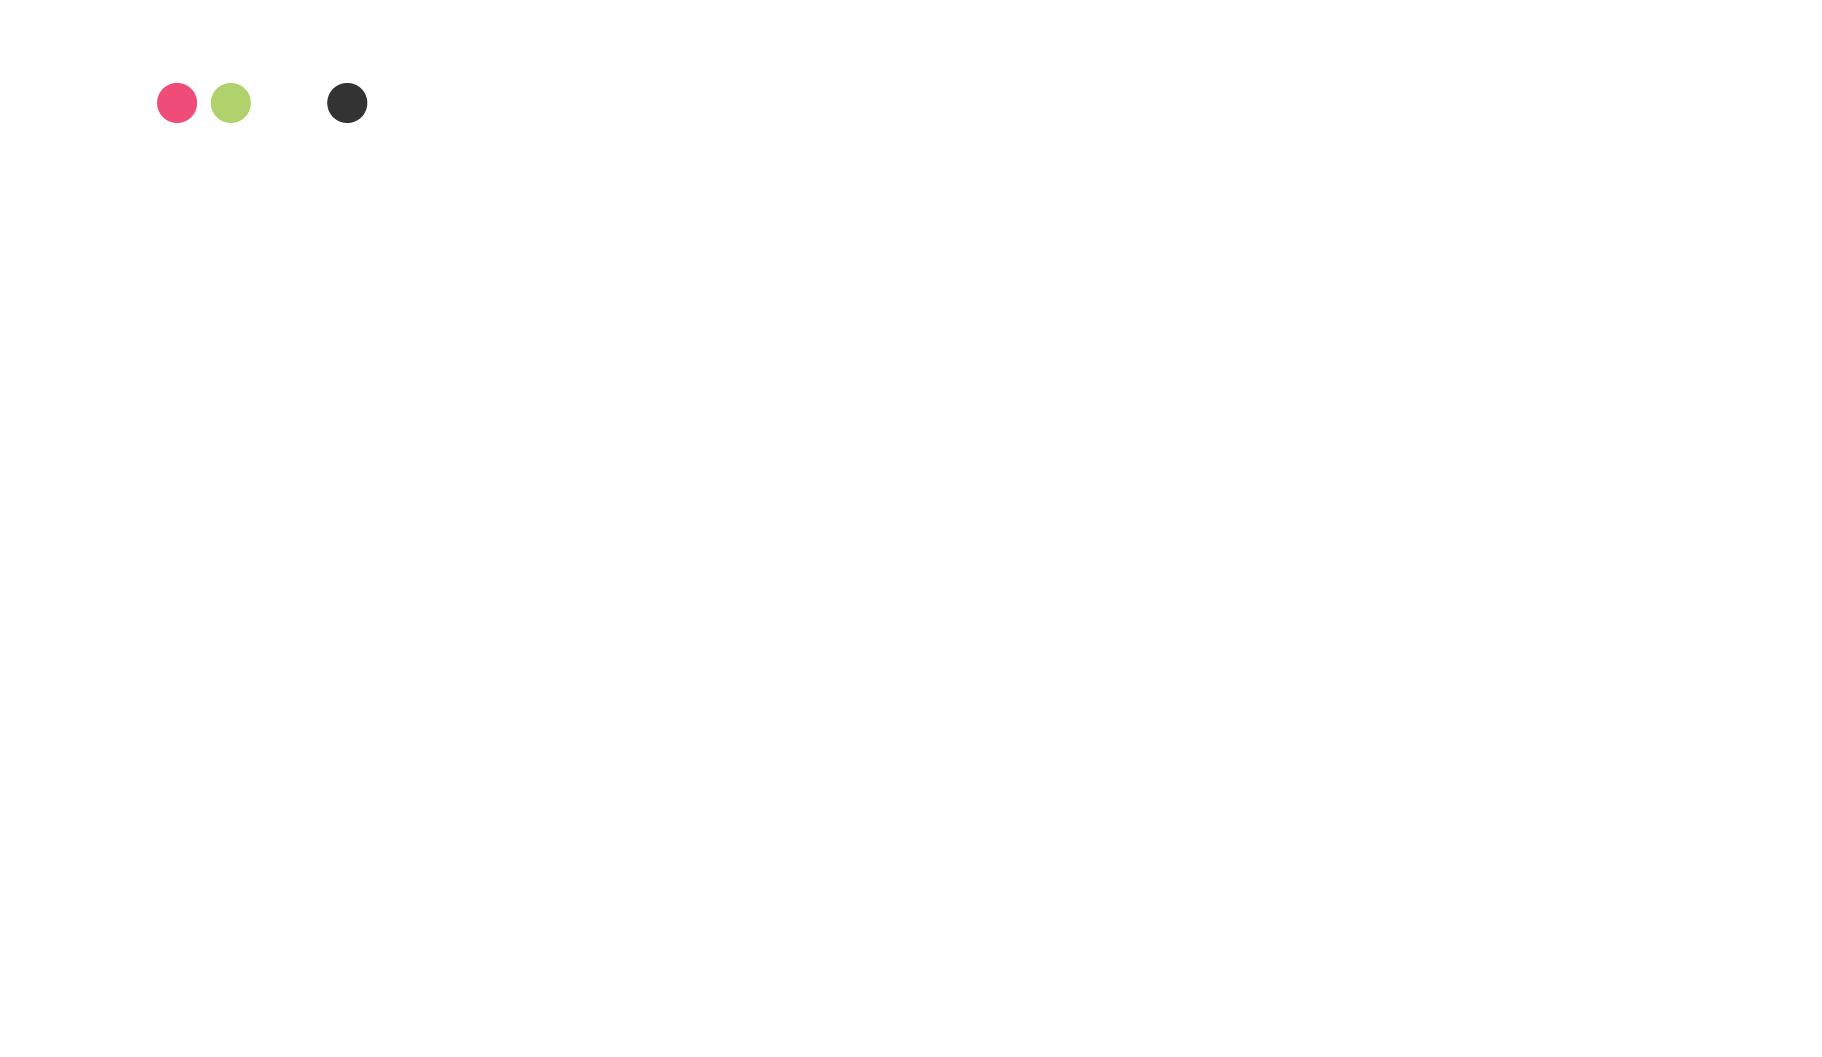 The Colour Pallet and font choices for the EcoSystem Brand